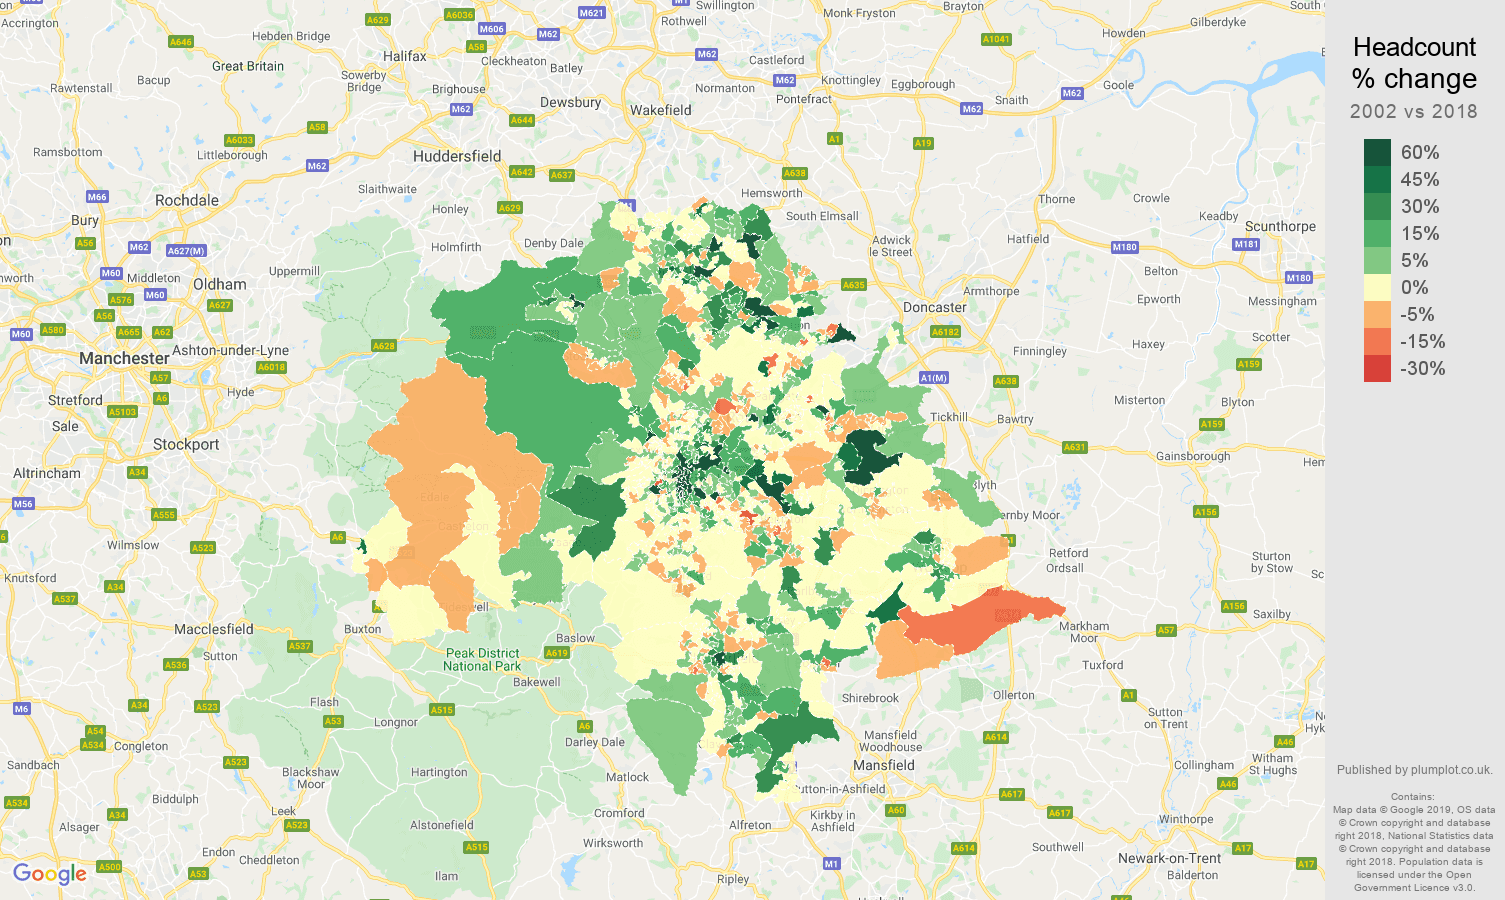 Sheffield headcount change map